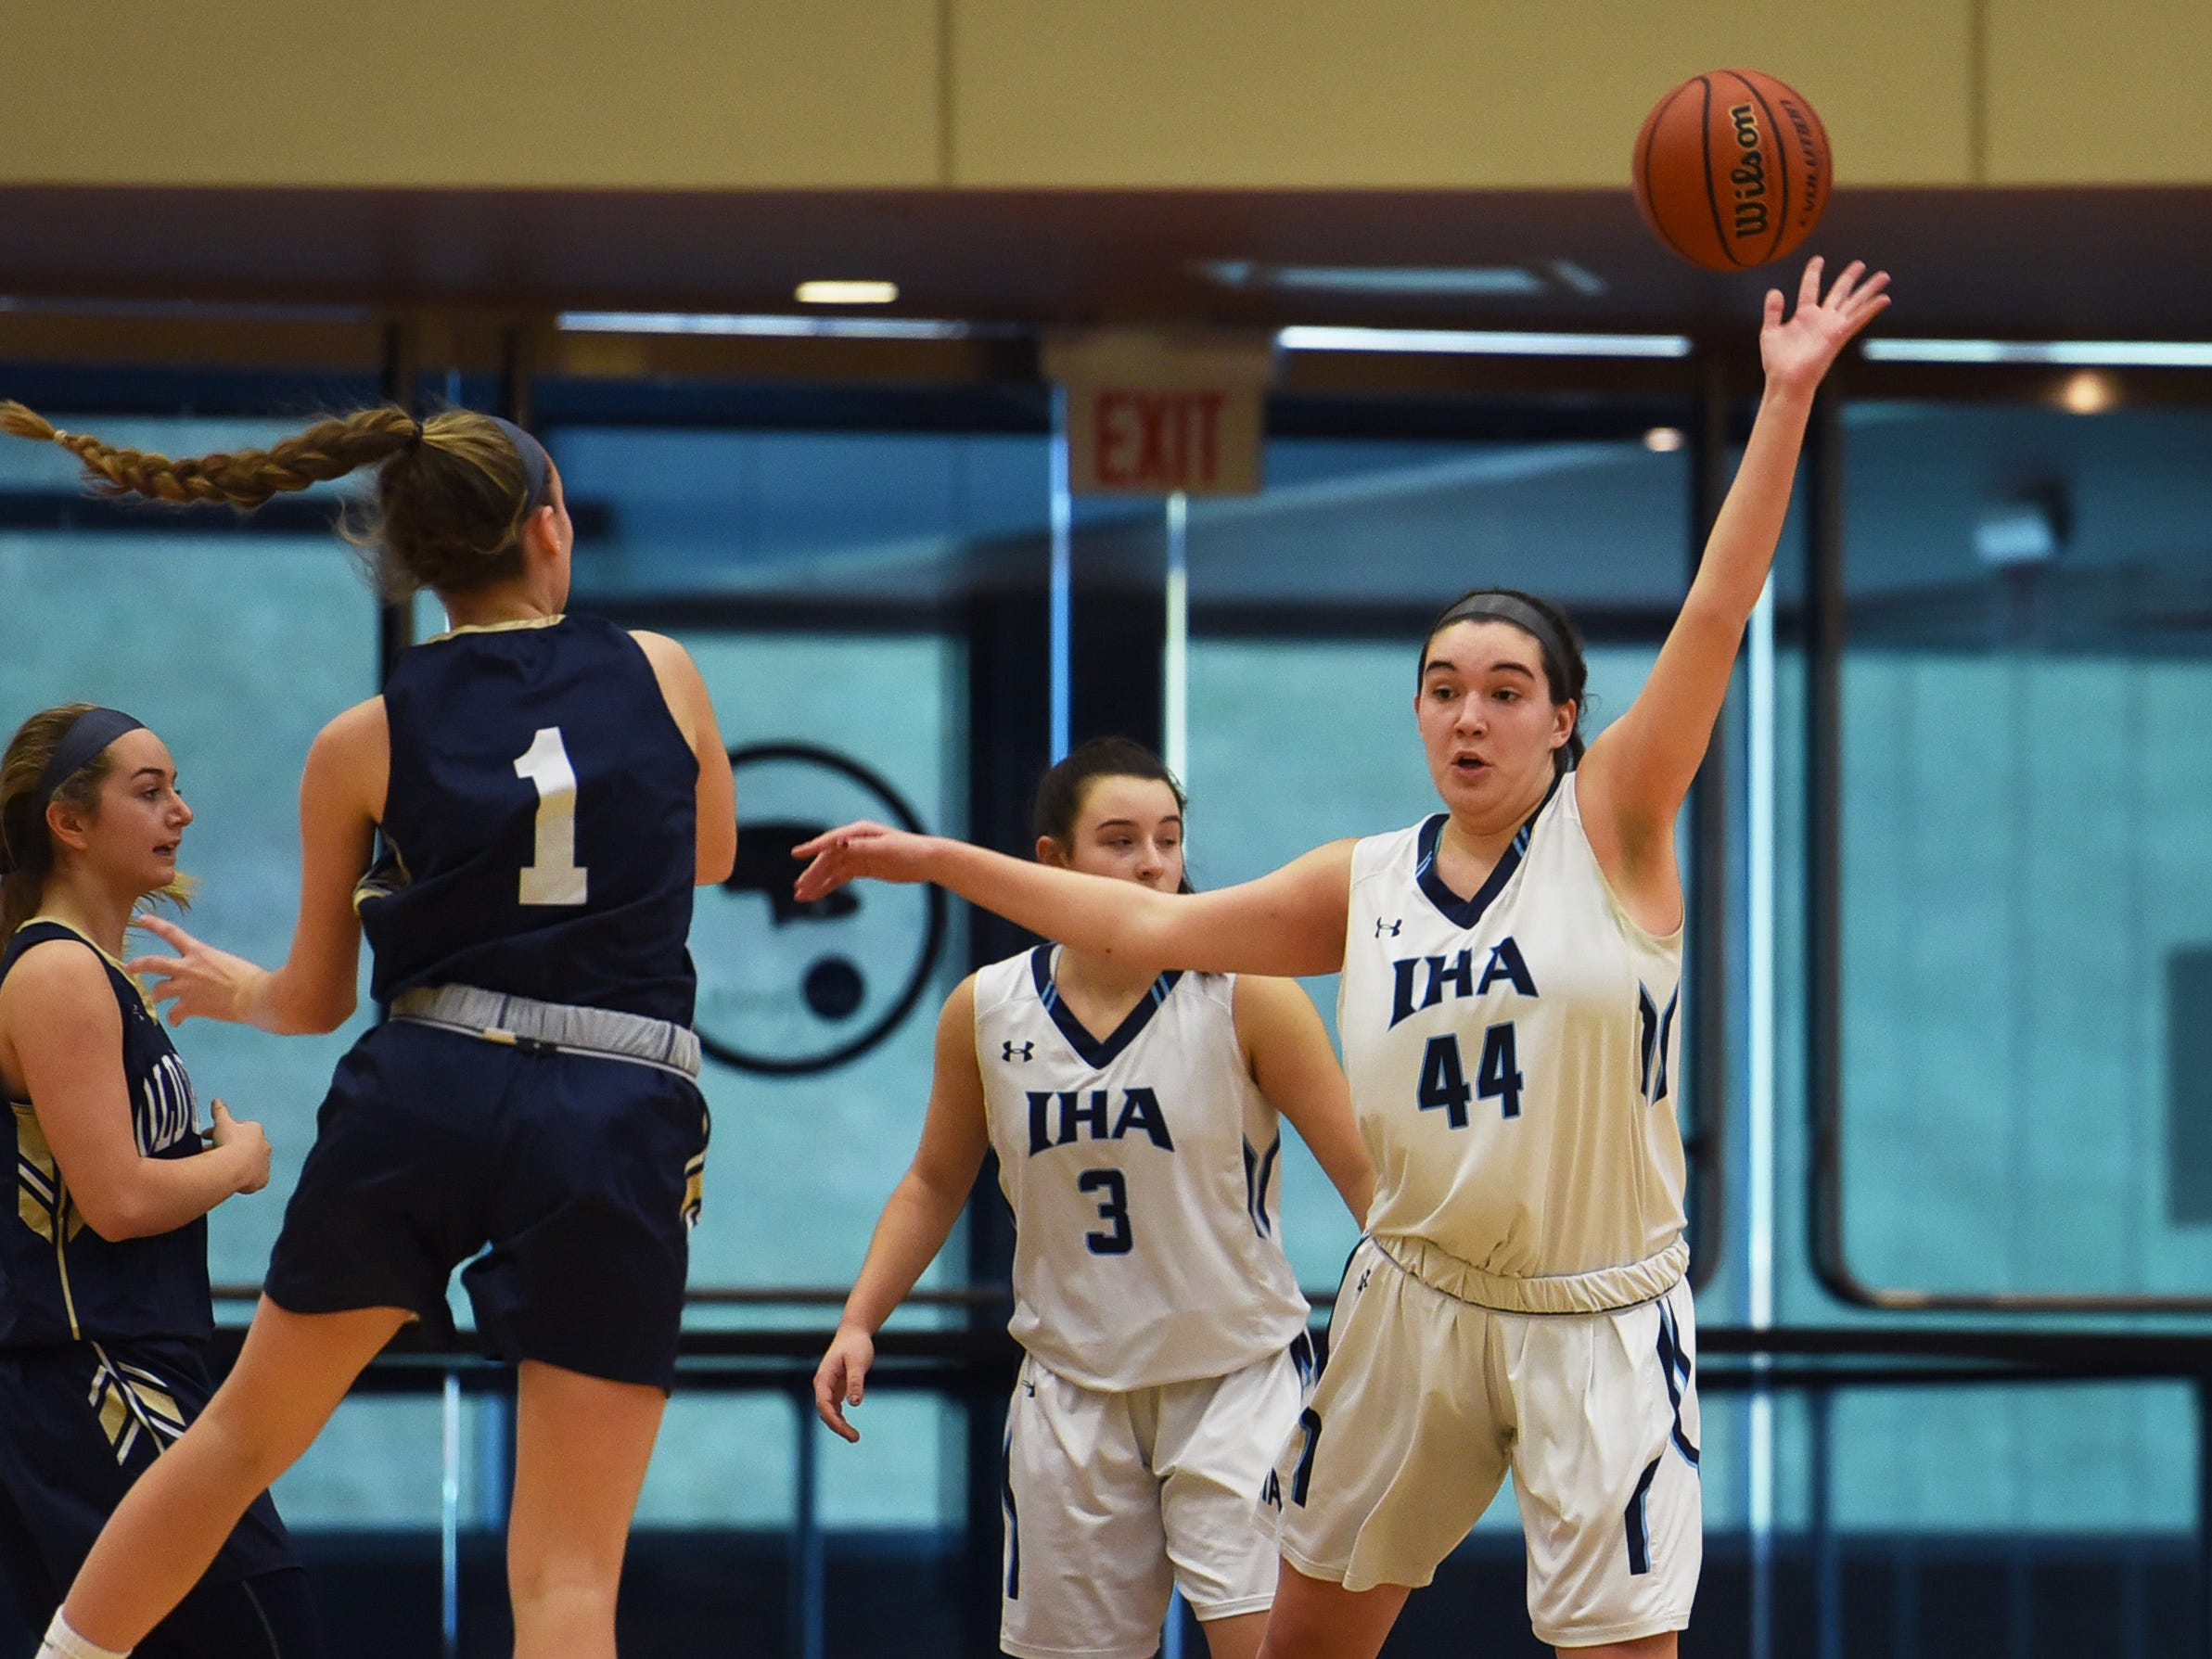 Emma Matesic (no. 44) of Immaculate Heart extends her hand to block the pass against NV/Old Tappan in the first half during the 2019 Bergen County girls basketball championship semifinal at Ramapo College in Mahwah on 02/10/19.